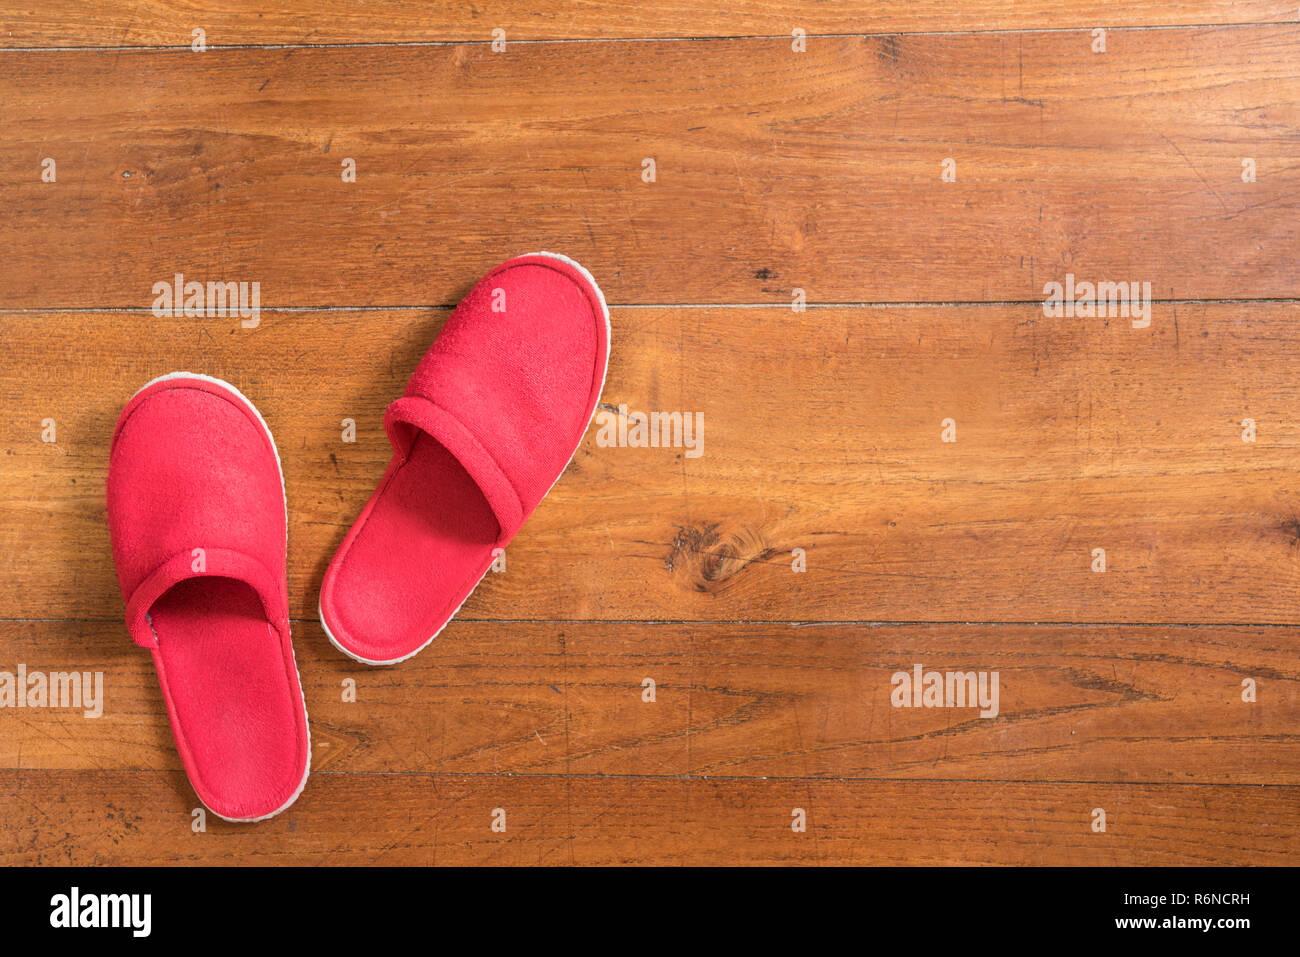 81d8b2ddb3b a pair of red slippers on the wooden floor Stock Photo  227893781 ...